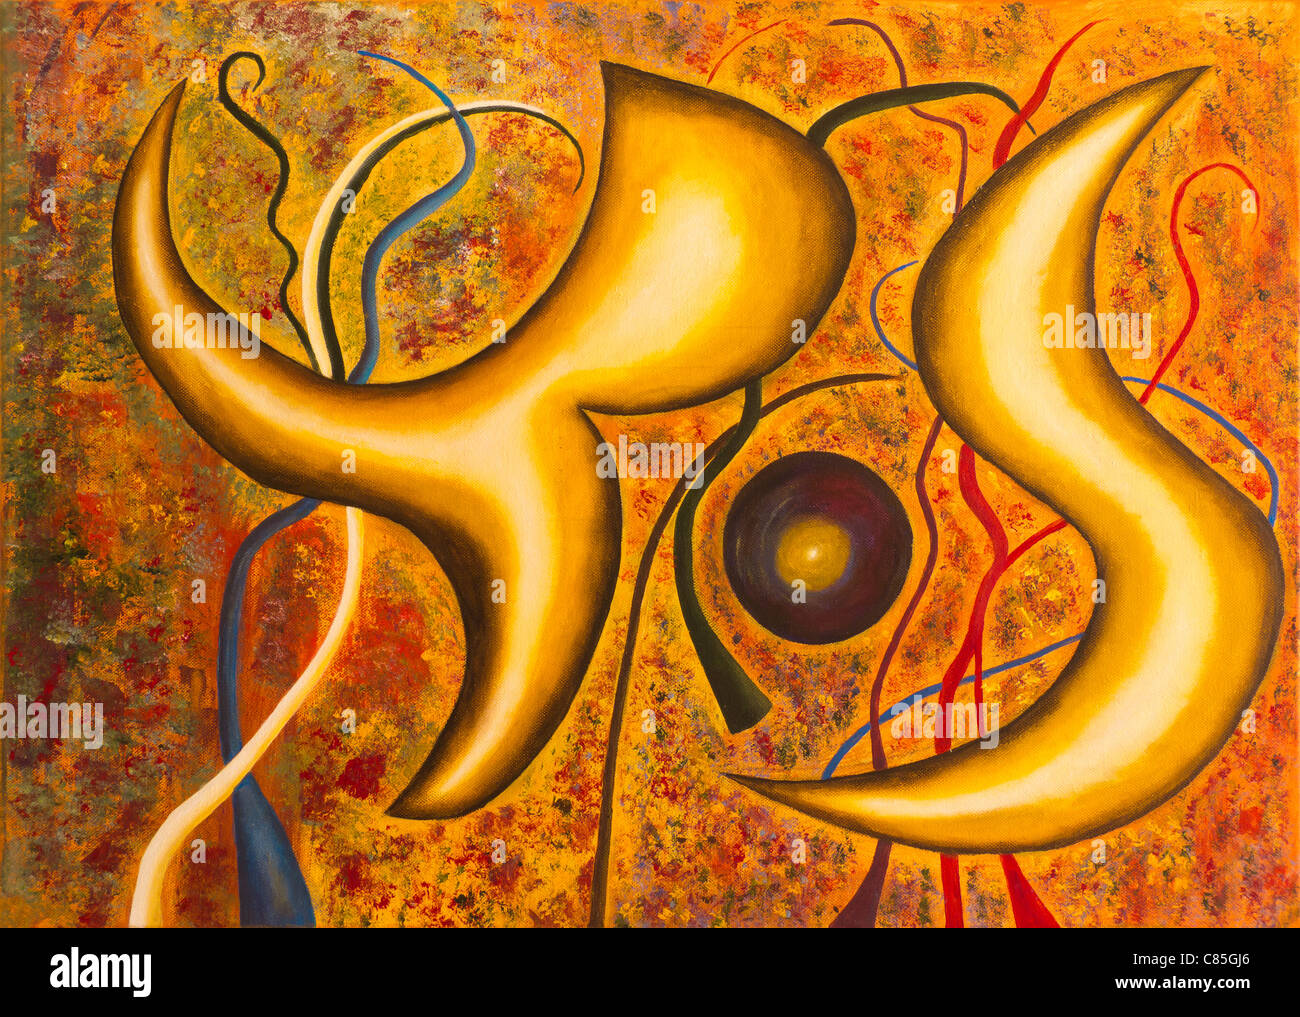 Lifeforms Abstract Acrylic Painting - Stock Image